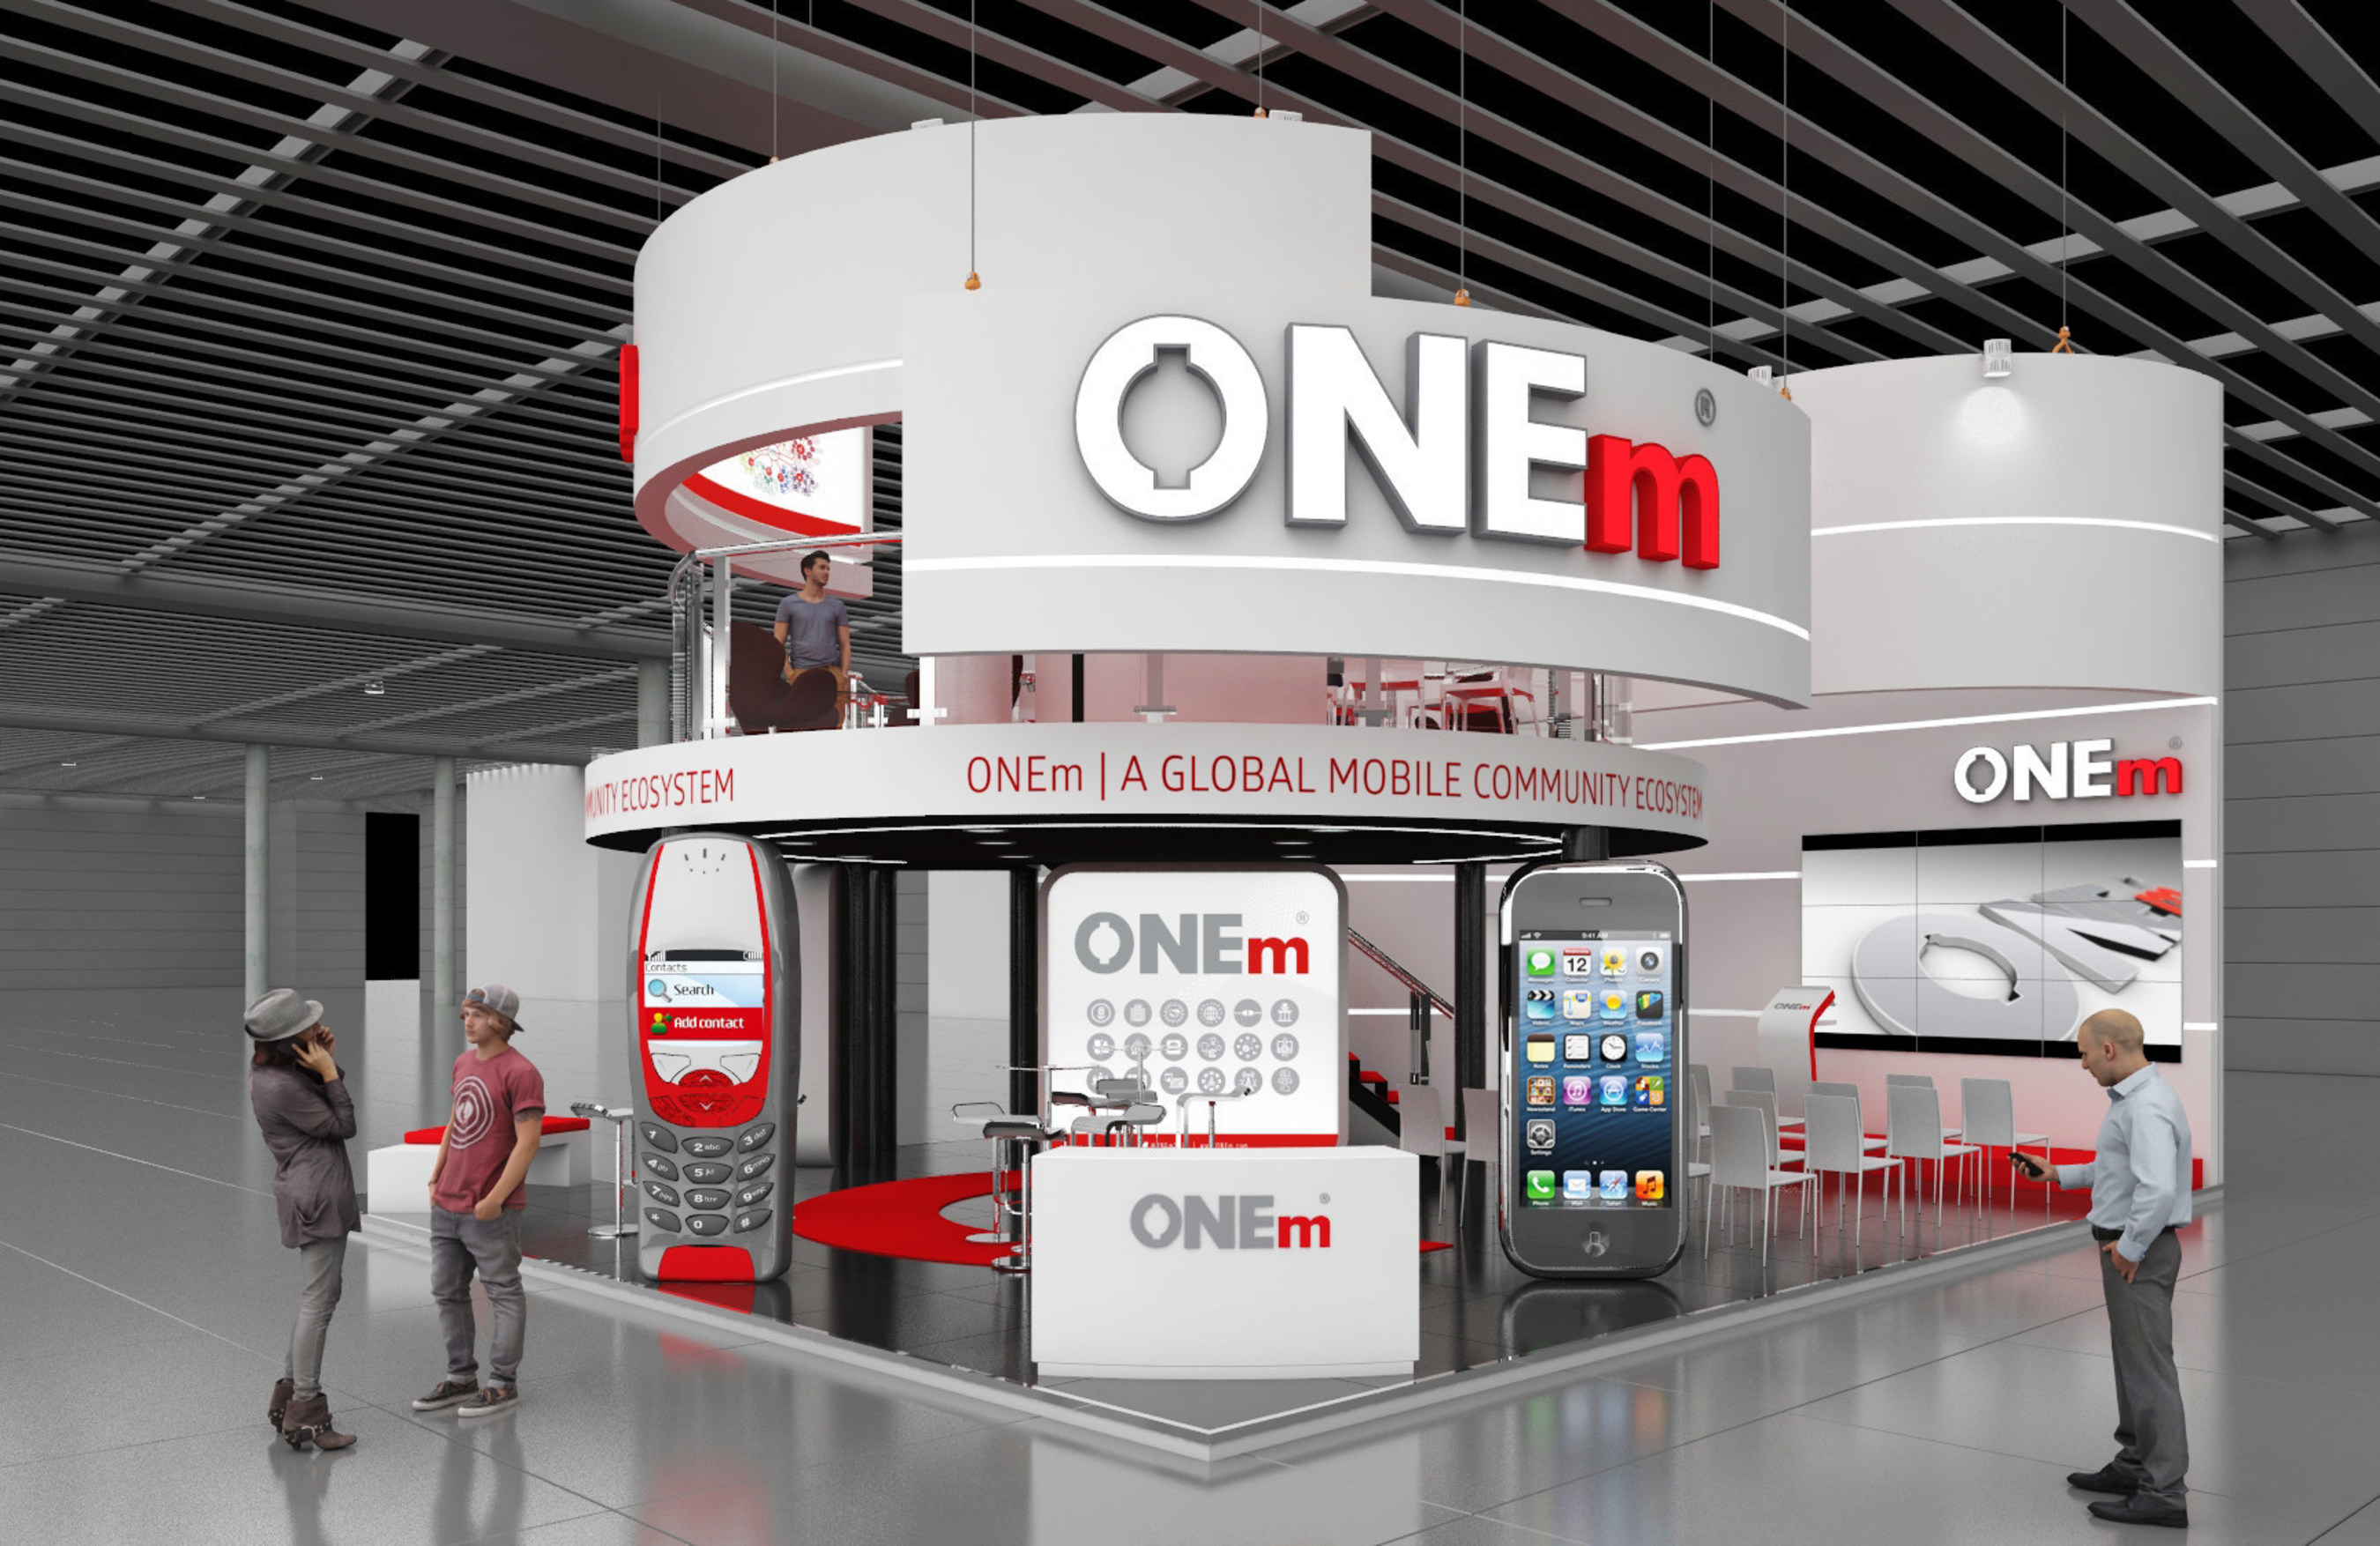 ONEm welcomes Beecell to its growing Mobile Ecosystem